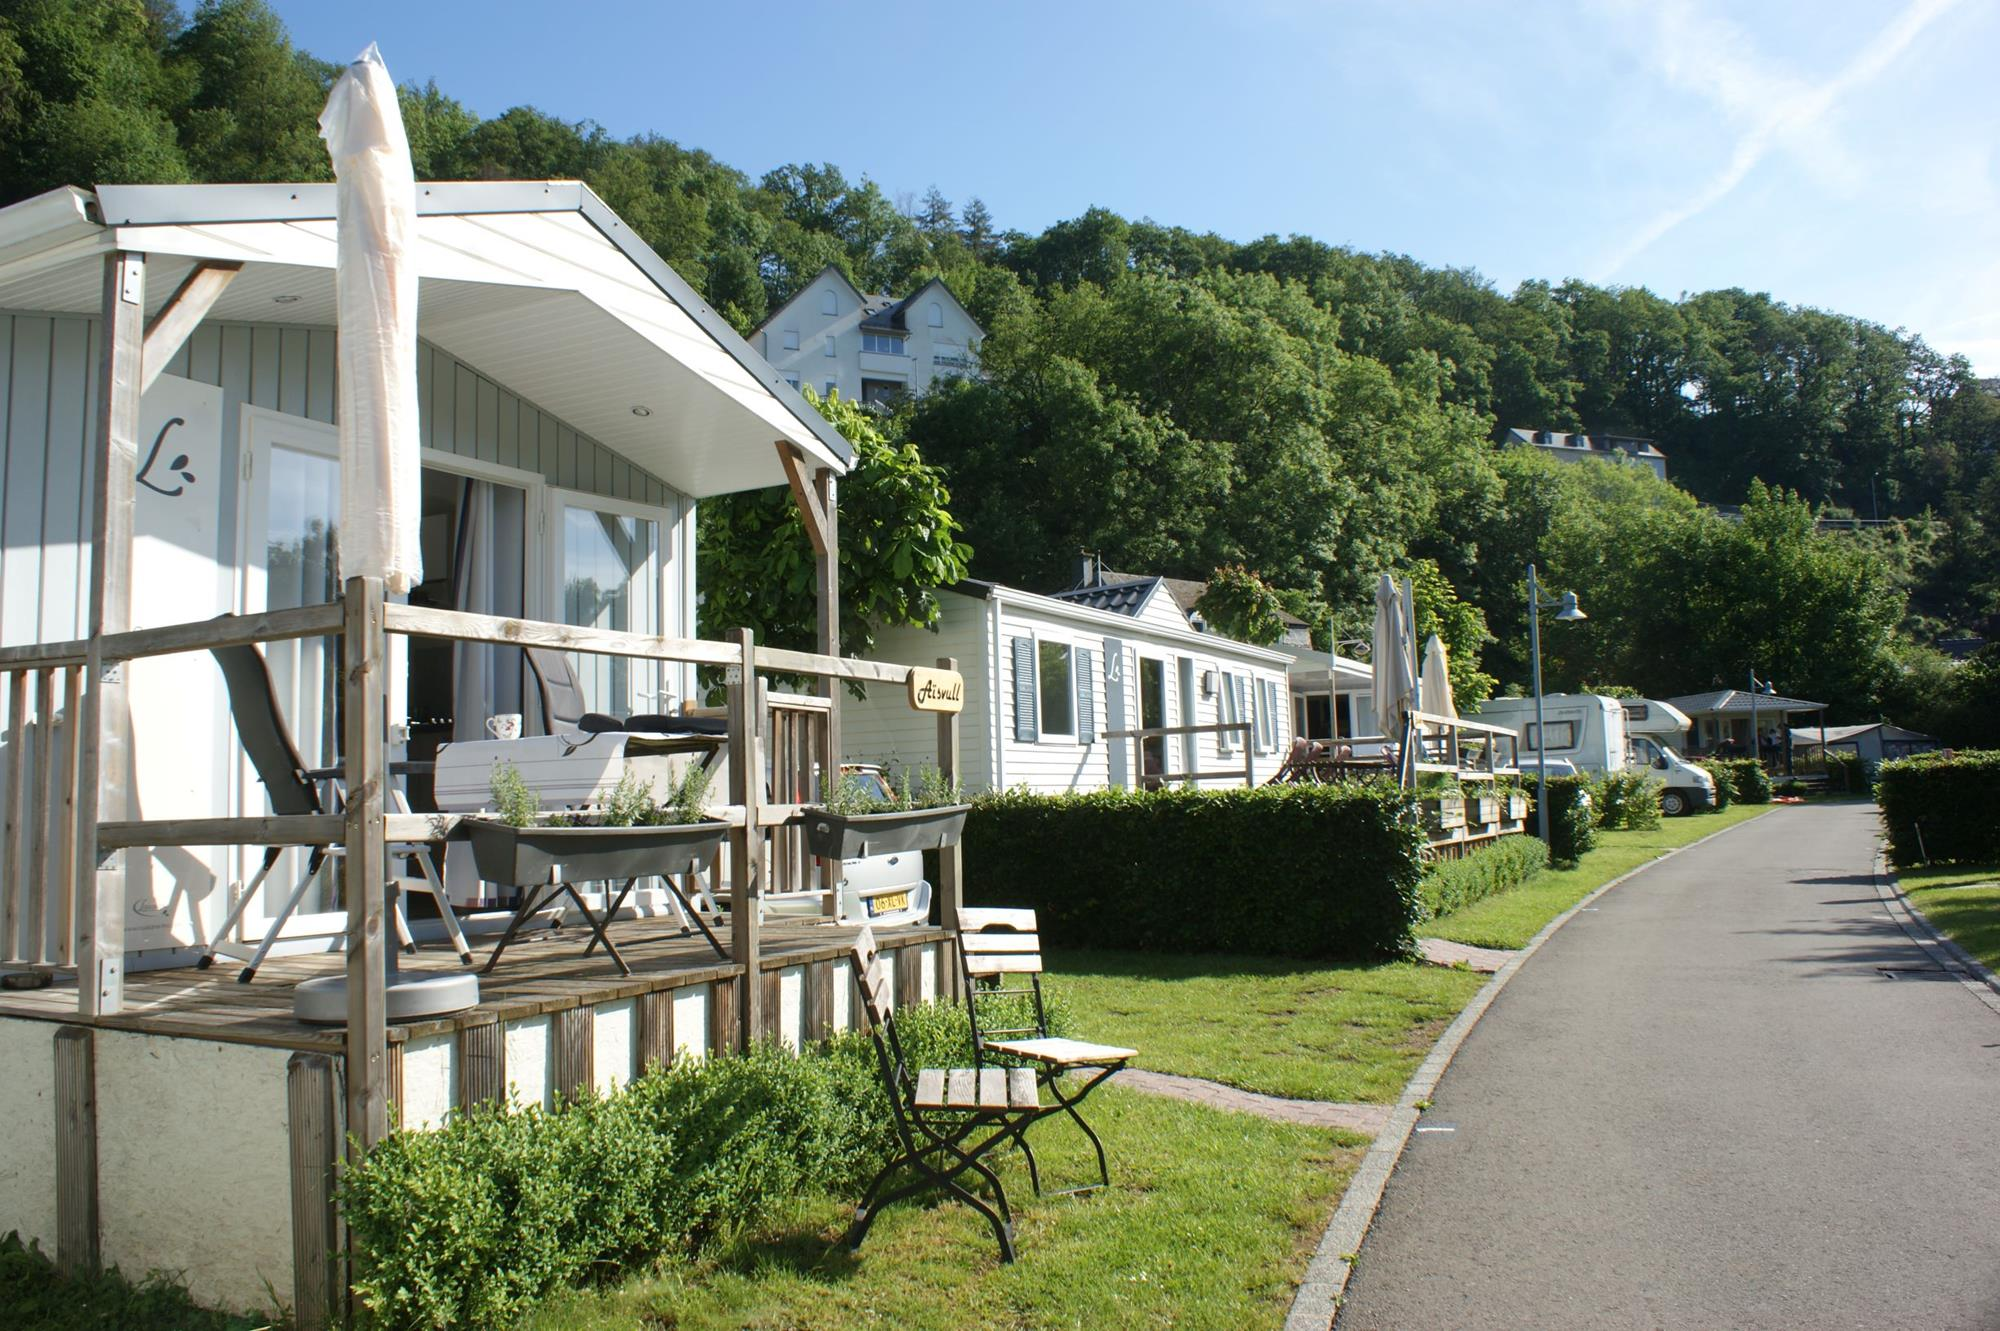 Mobilhome mieten auf dem Camping